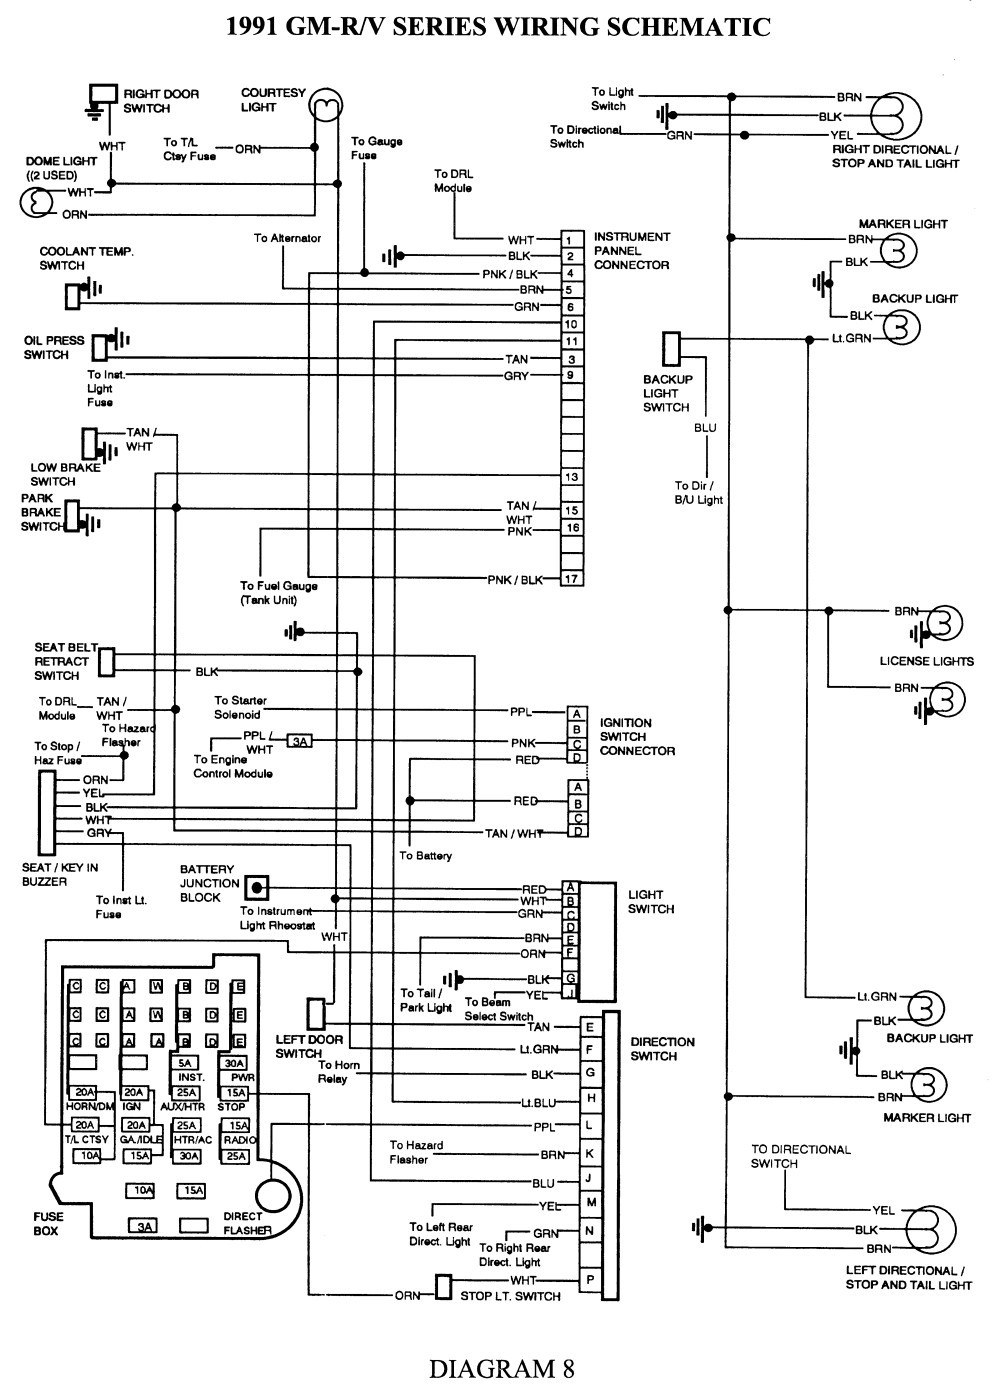 2002 chevy suburban radio wiring diagram wiring diagram. Black Bedroom Furniture Sets. Home Design Ideas